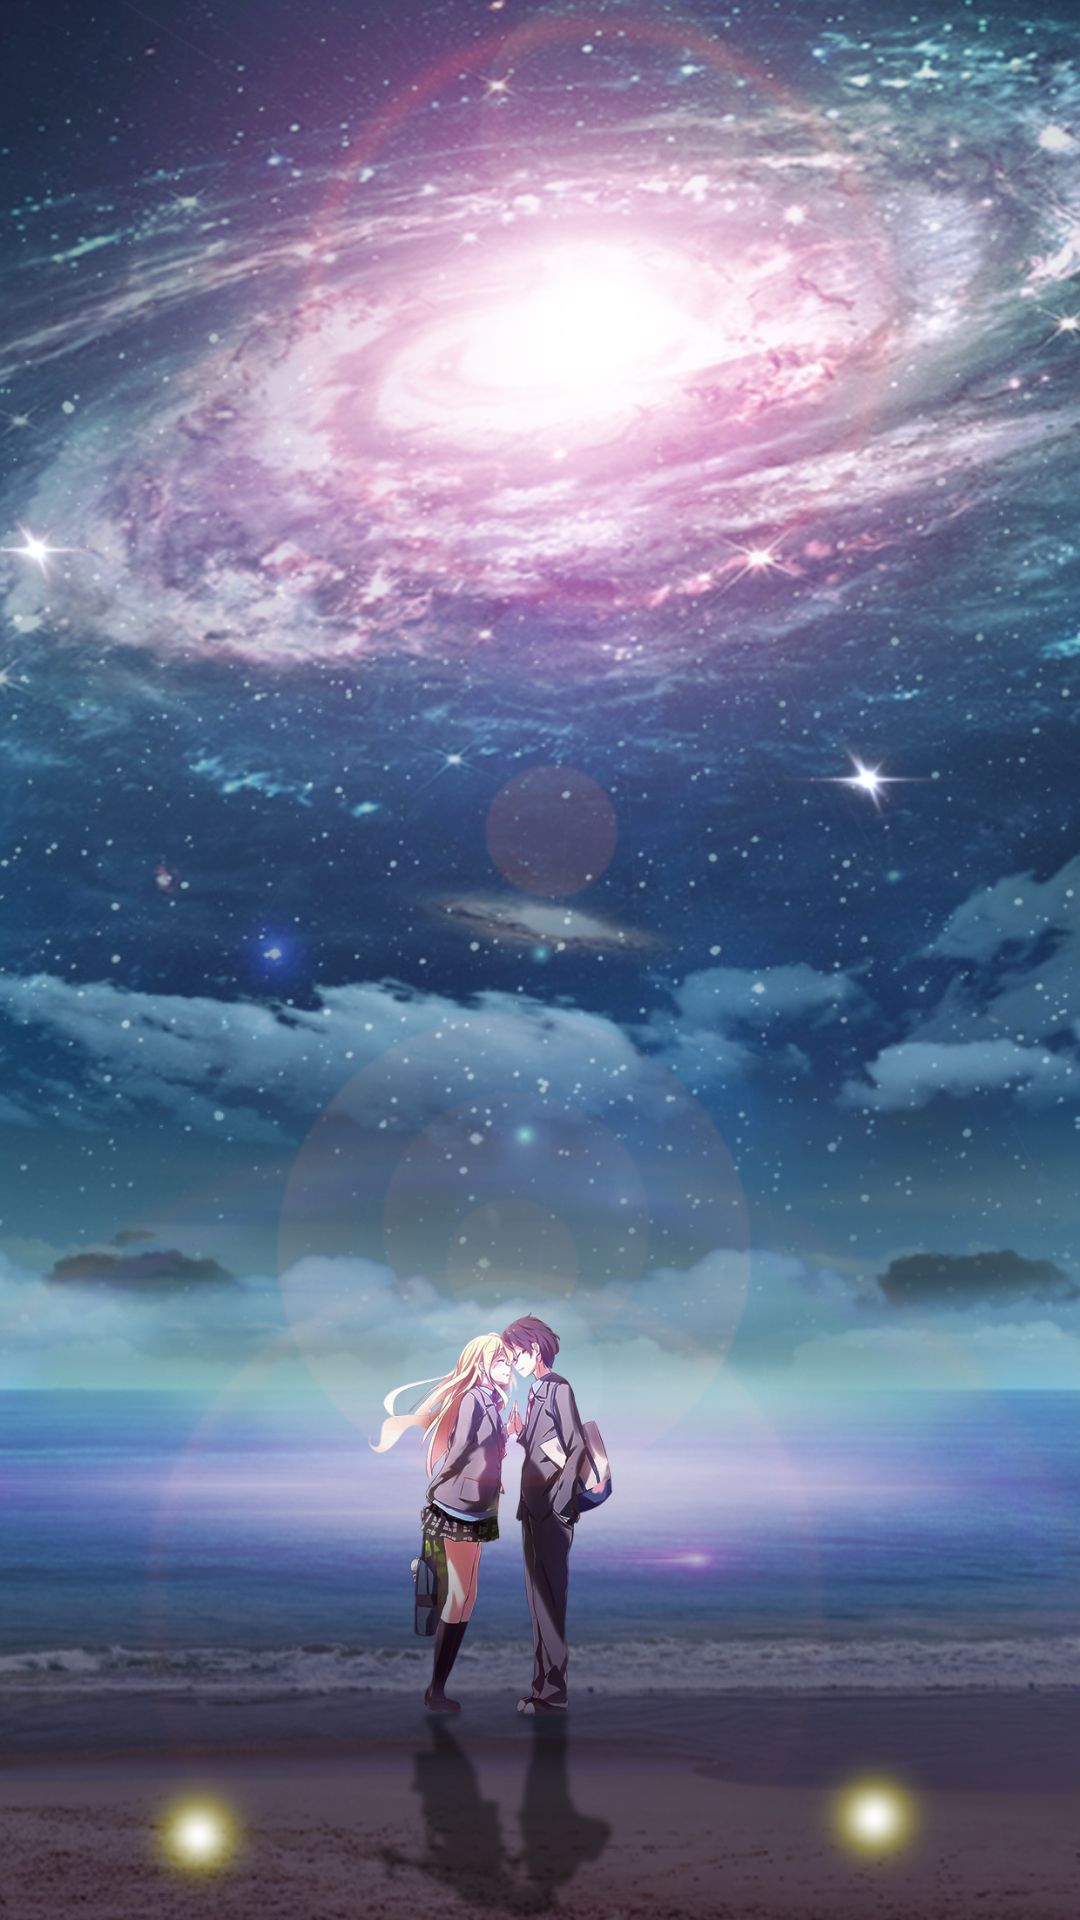 Your Lie In April Iphone Wallpapers Top Free Your Lie In April